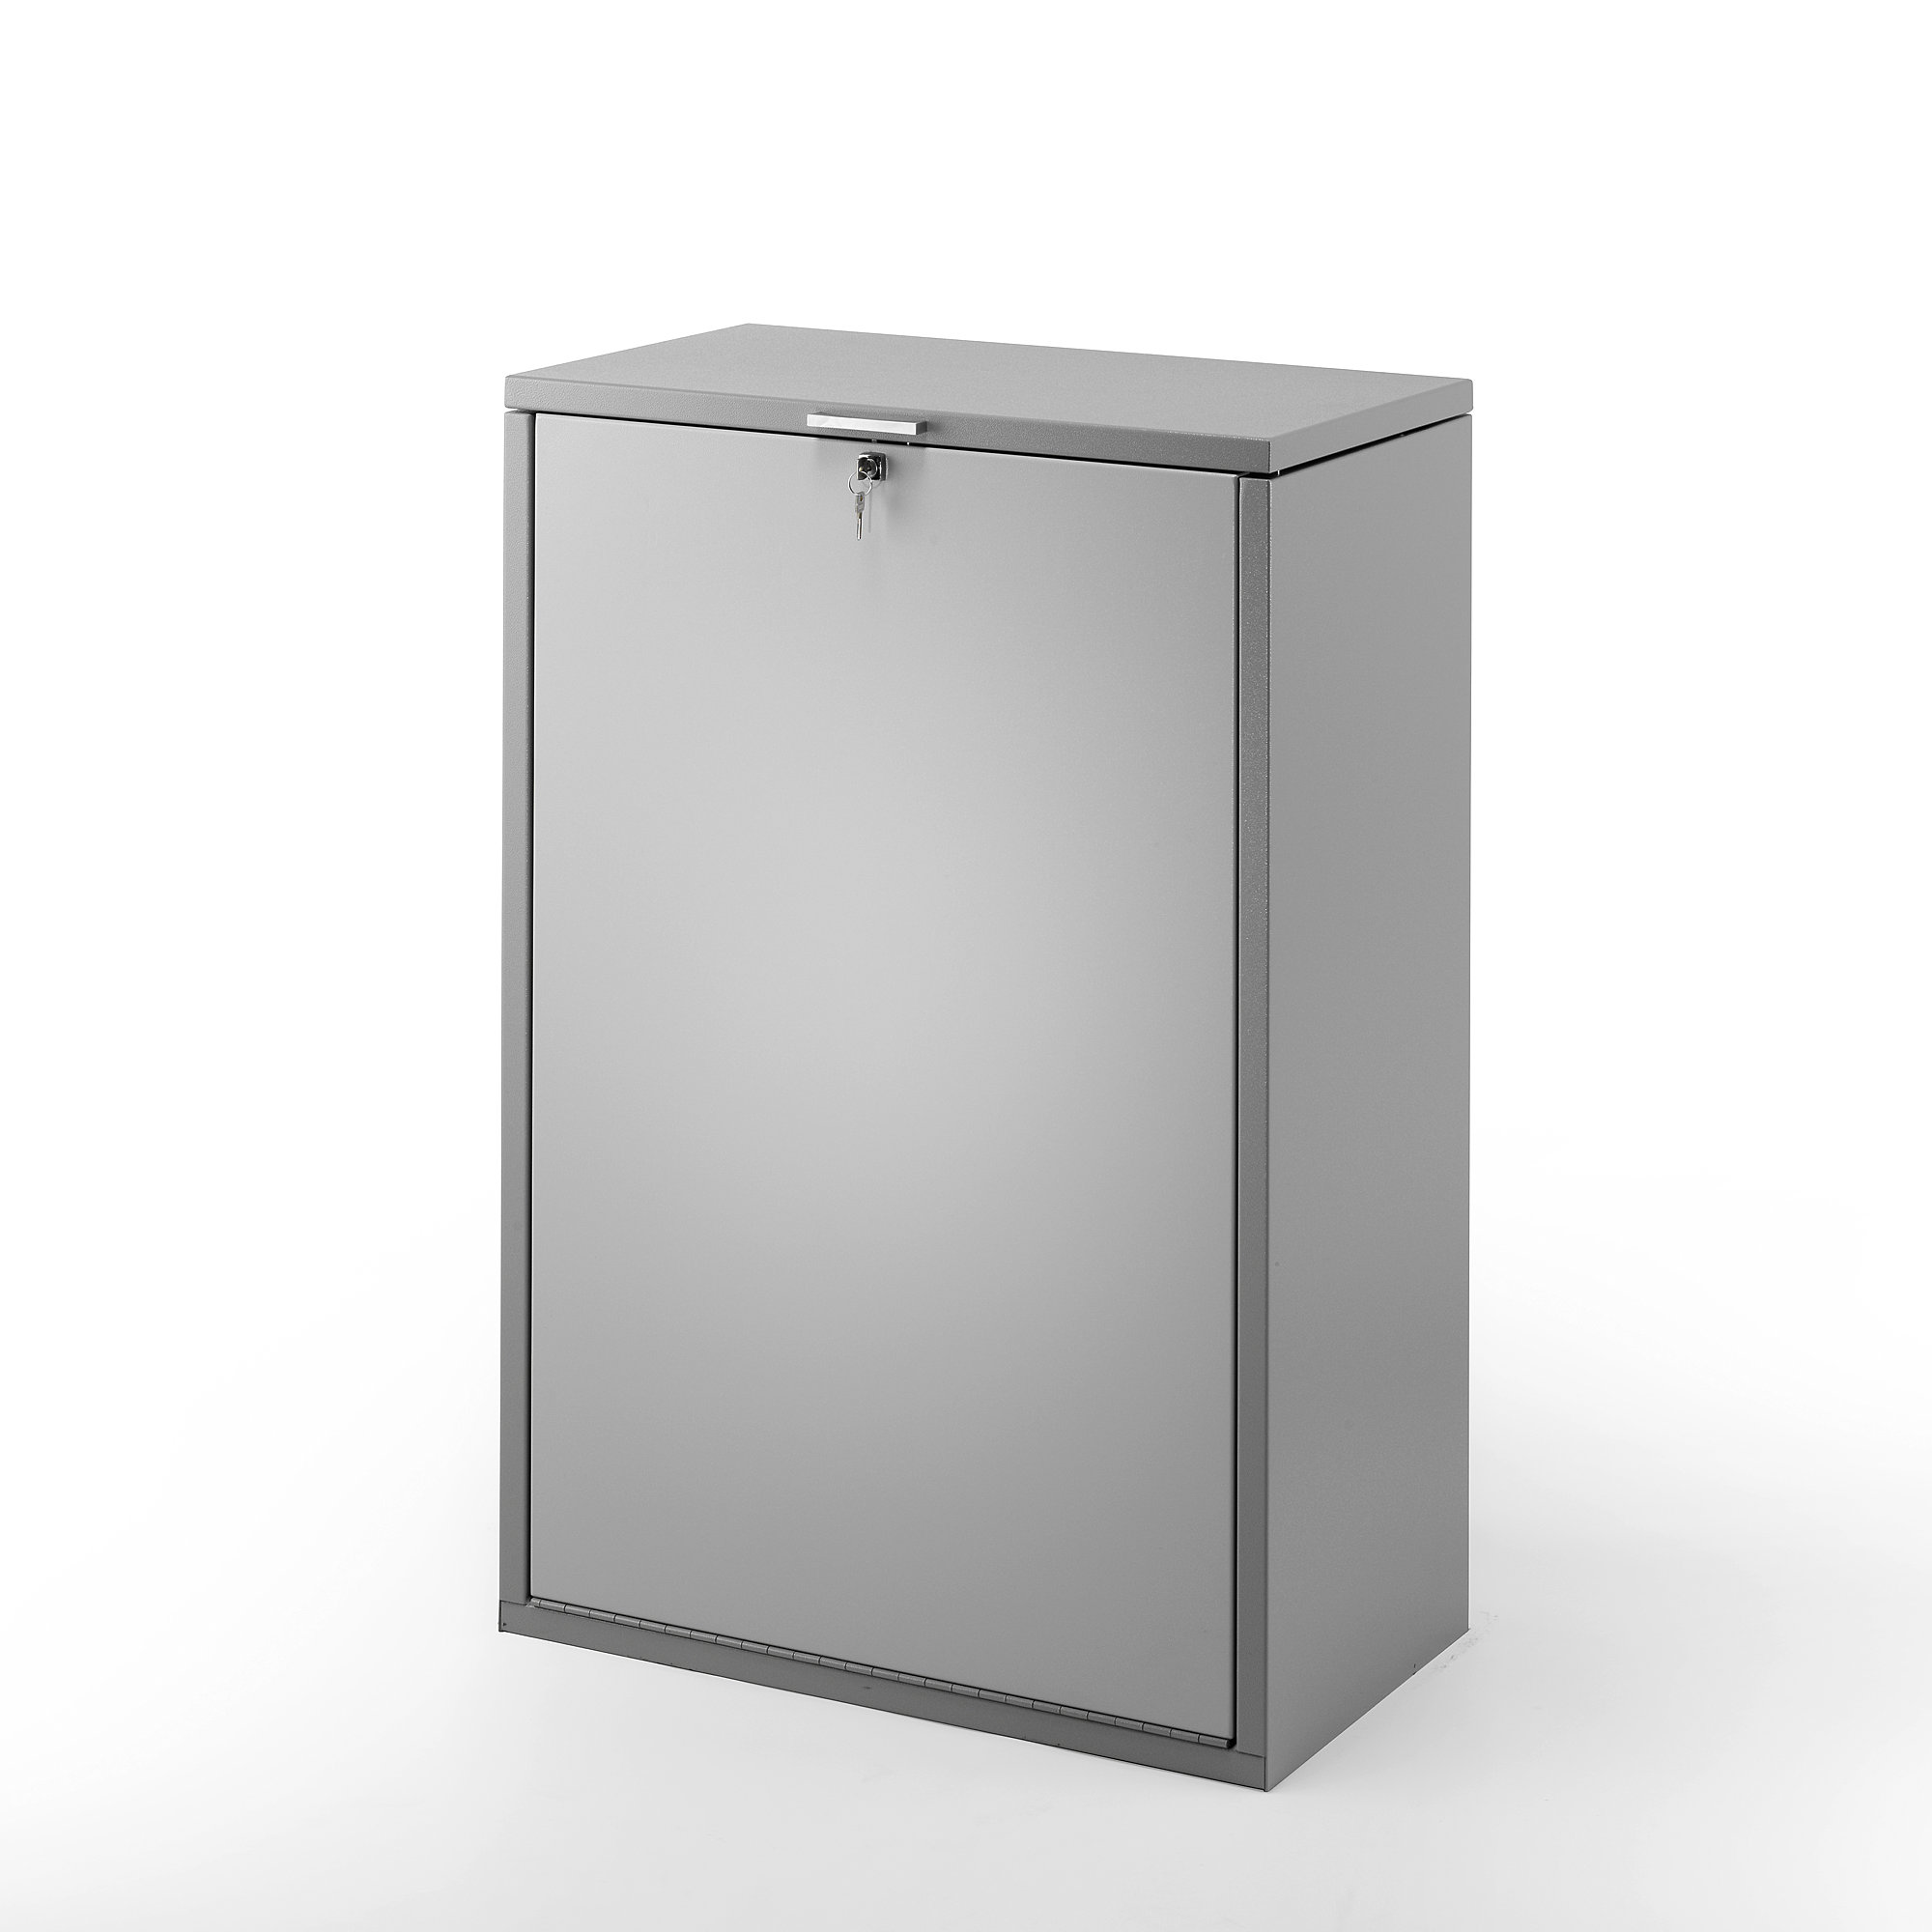 Vertical drawing cabinet 4 prongs A1 1105x740x430 mm